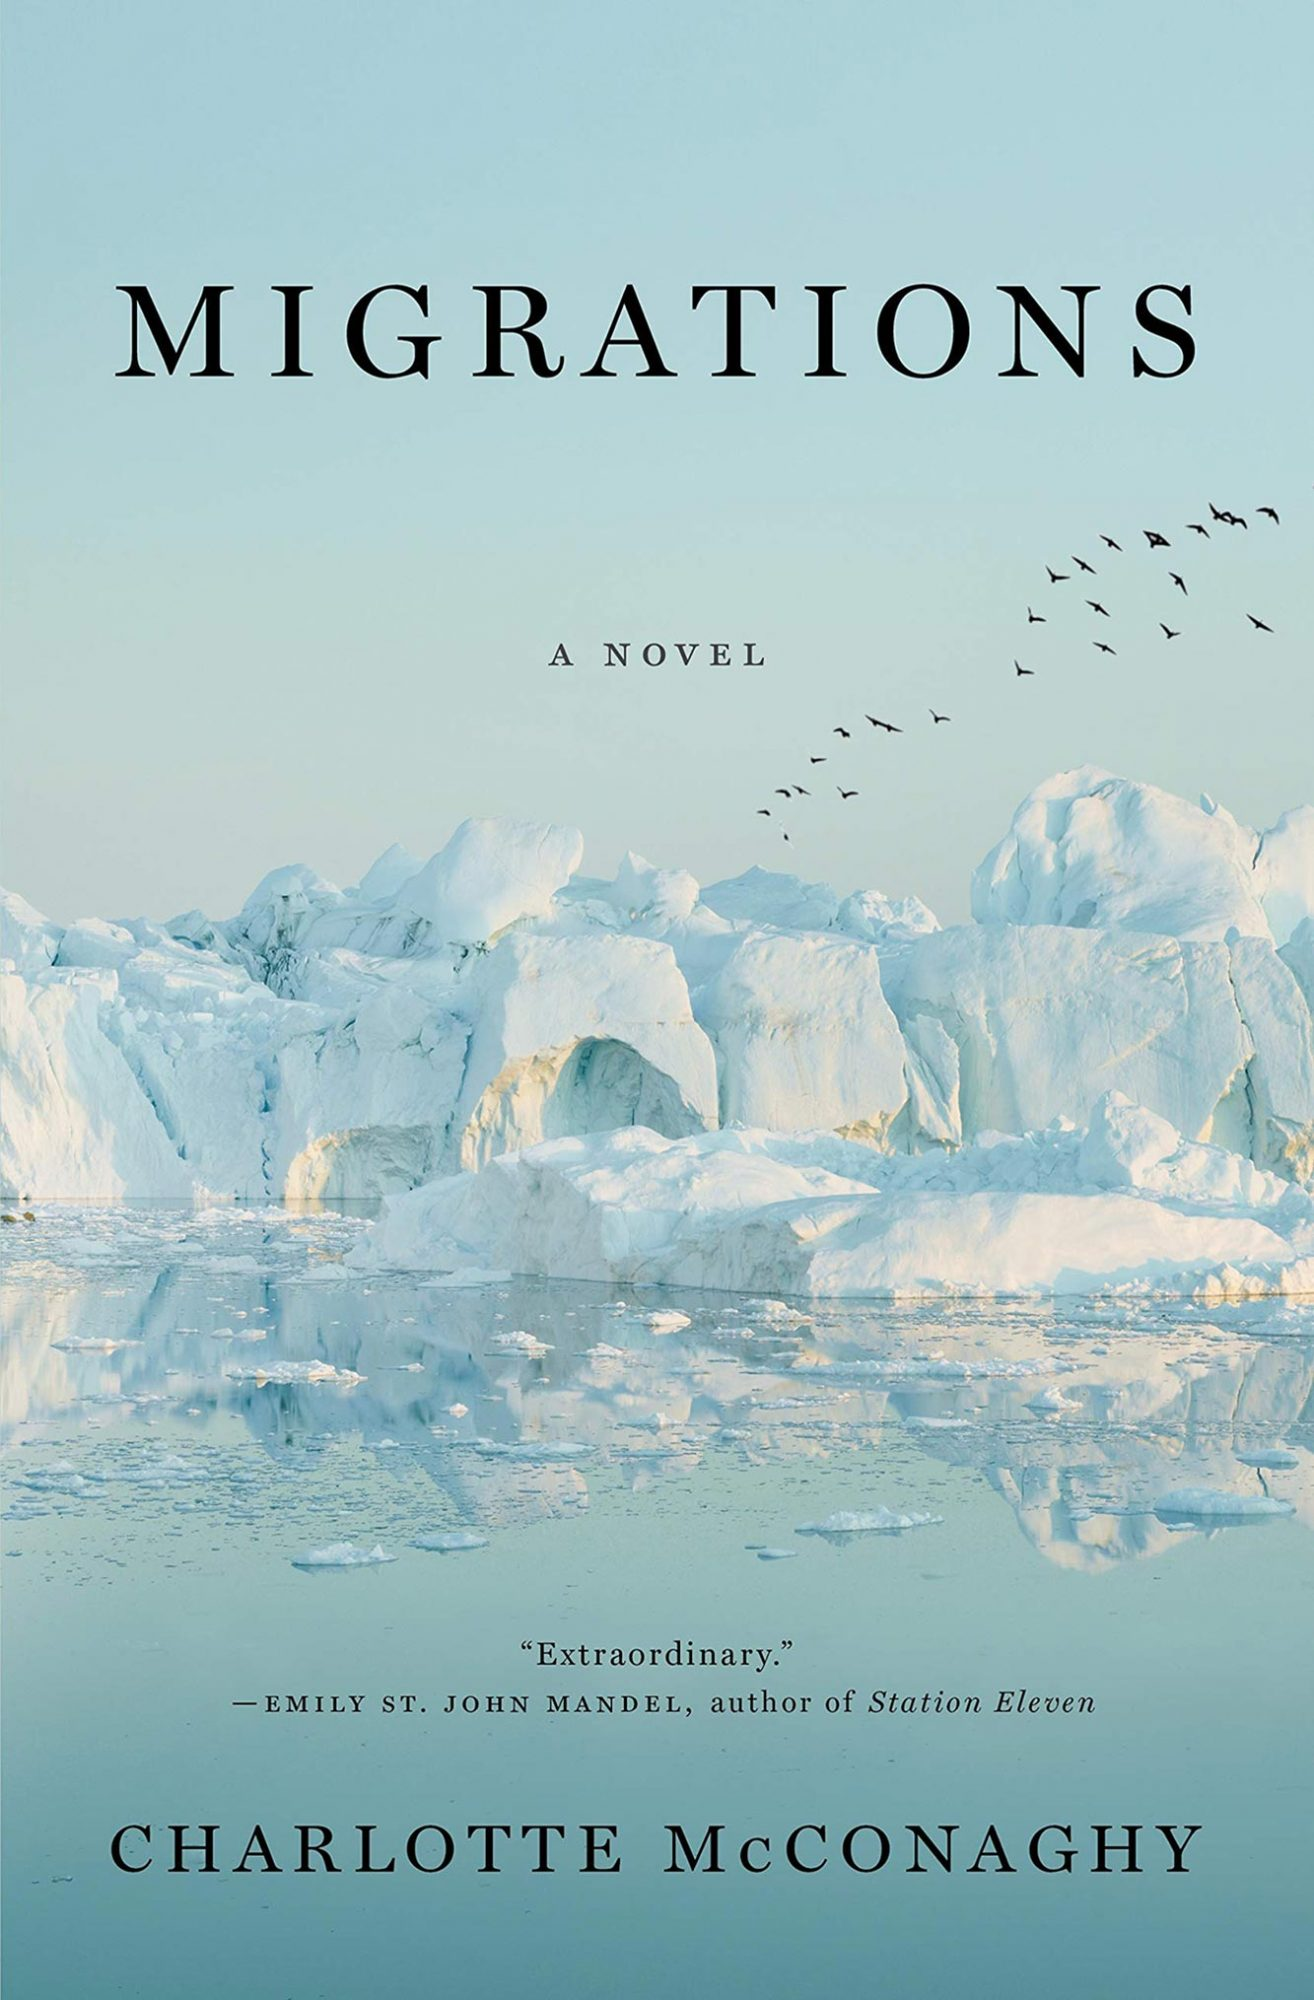 Migrations: A Novel by Charlotte McConaghy